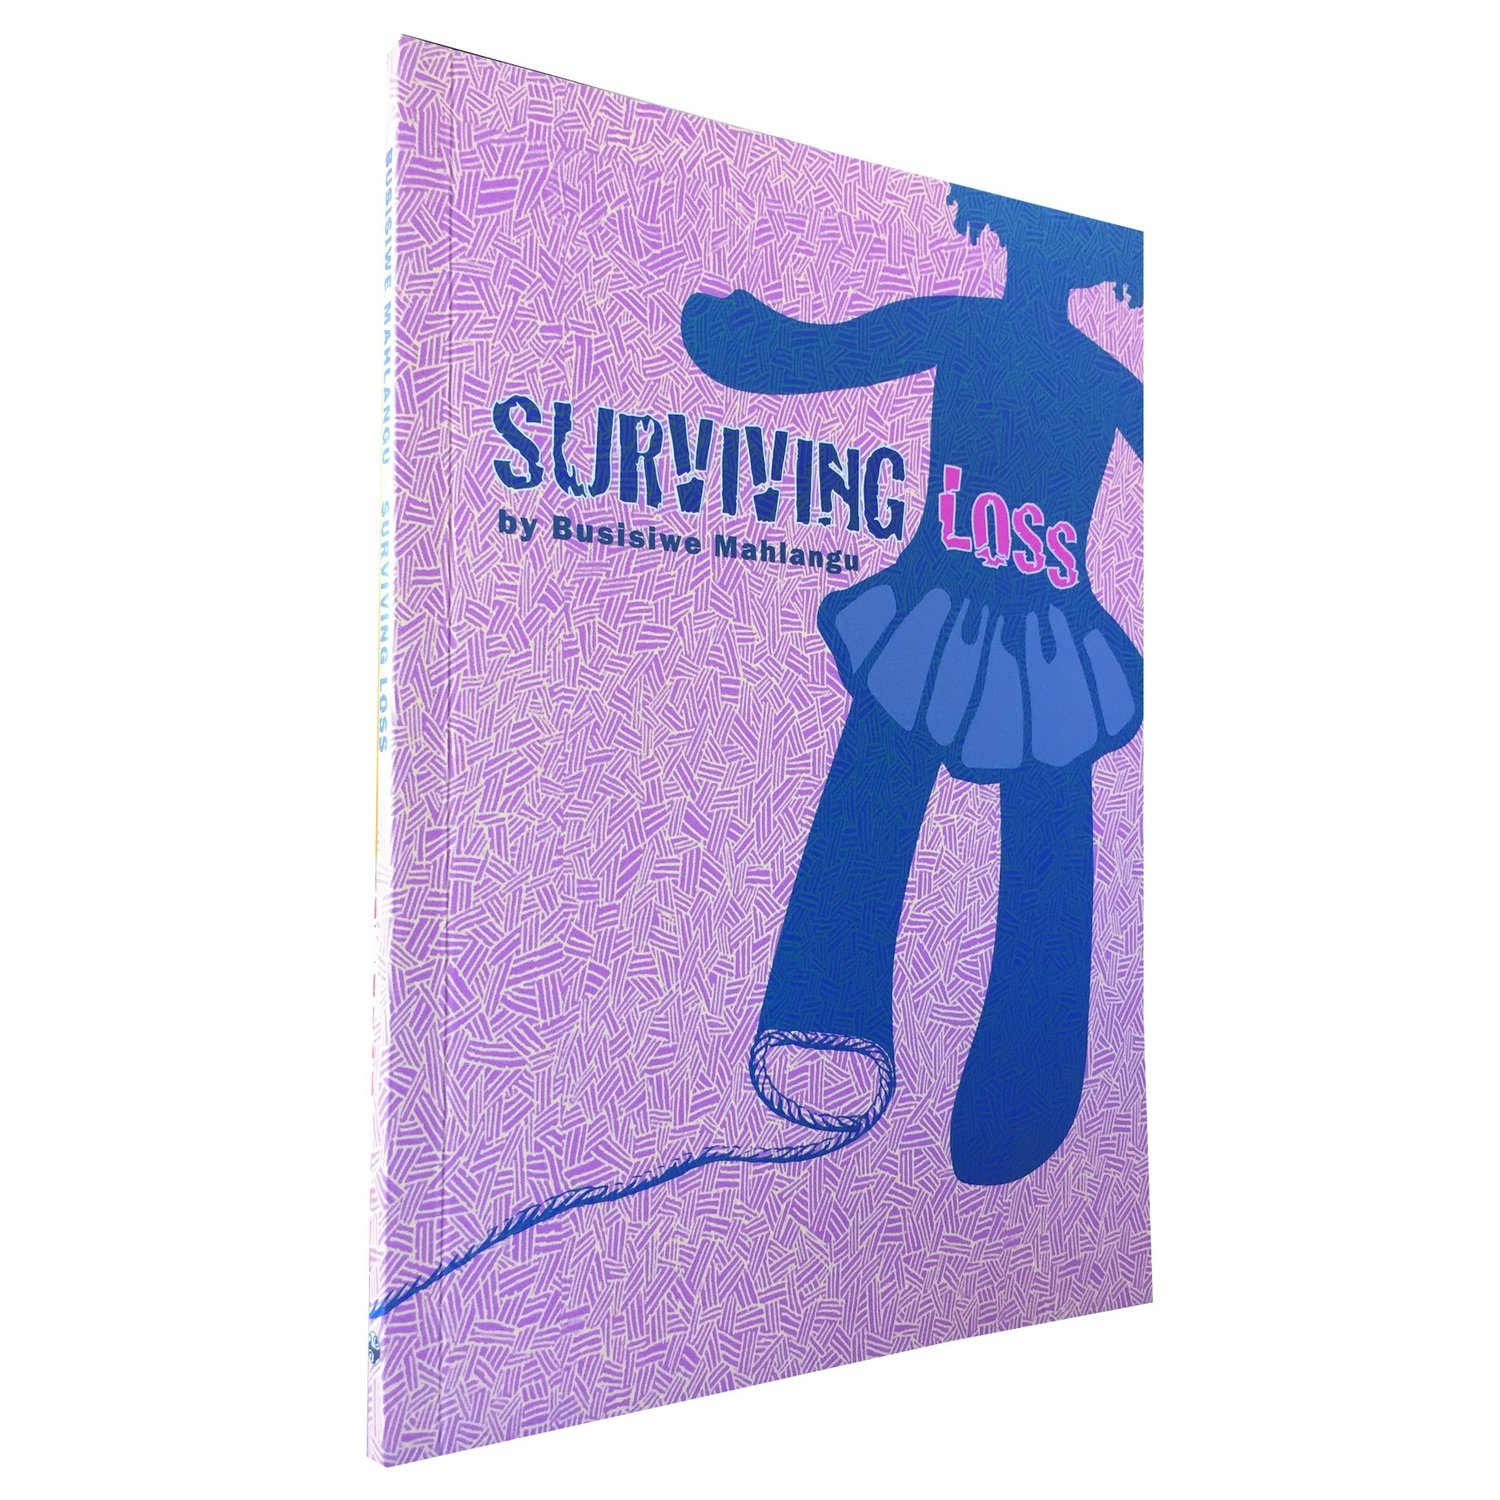 Surviving Loss by Busisiwe Mahlangu (Impepho Press)